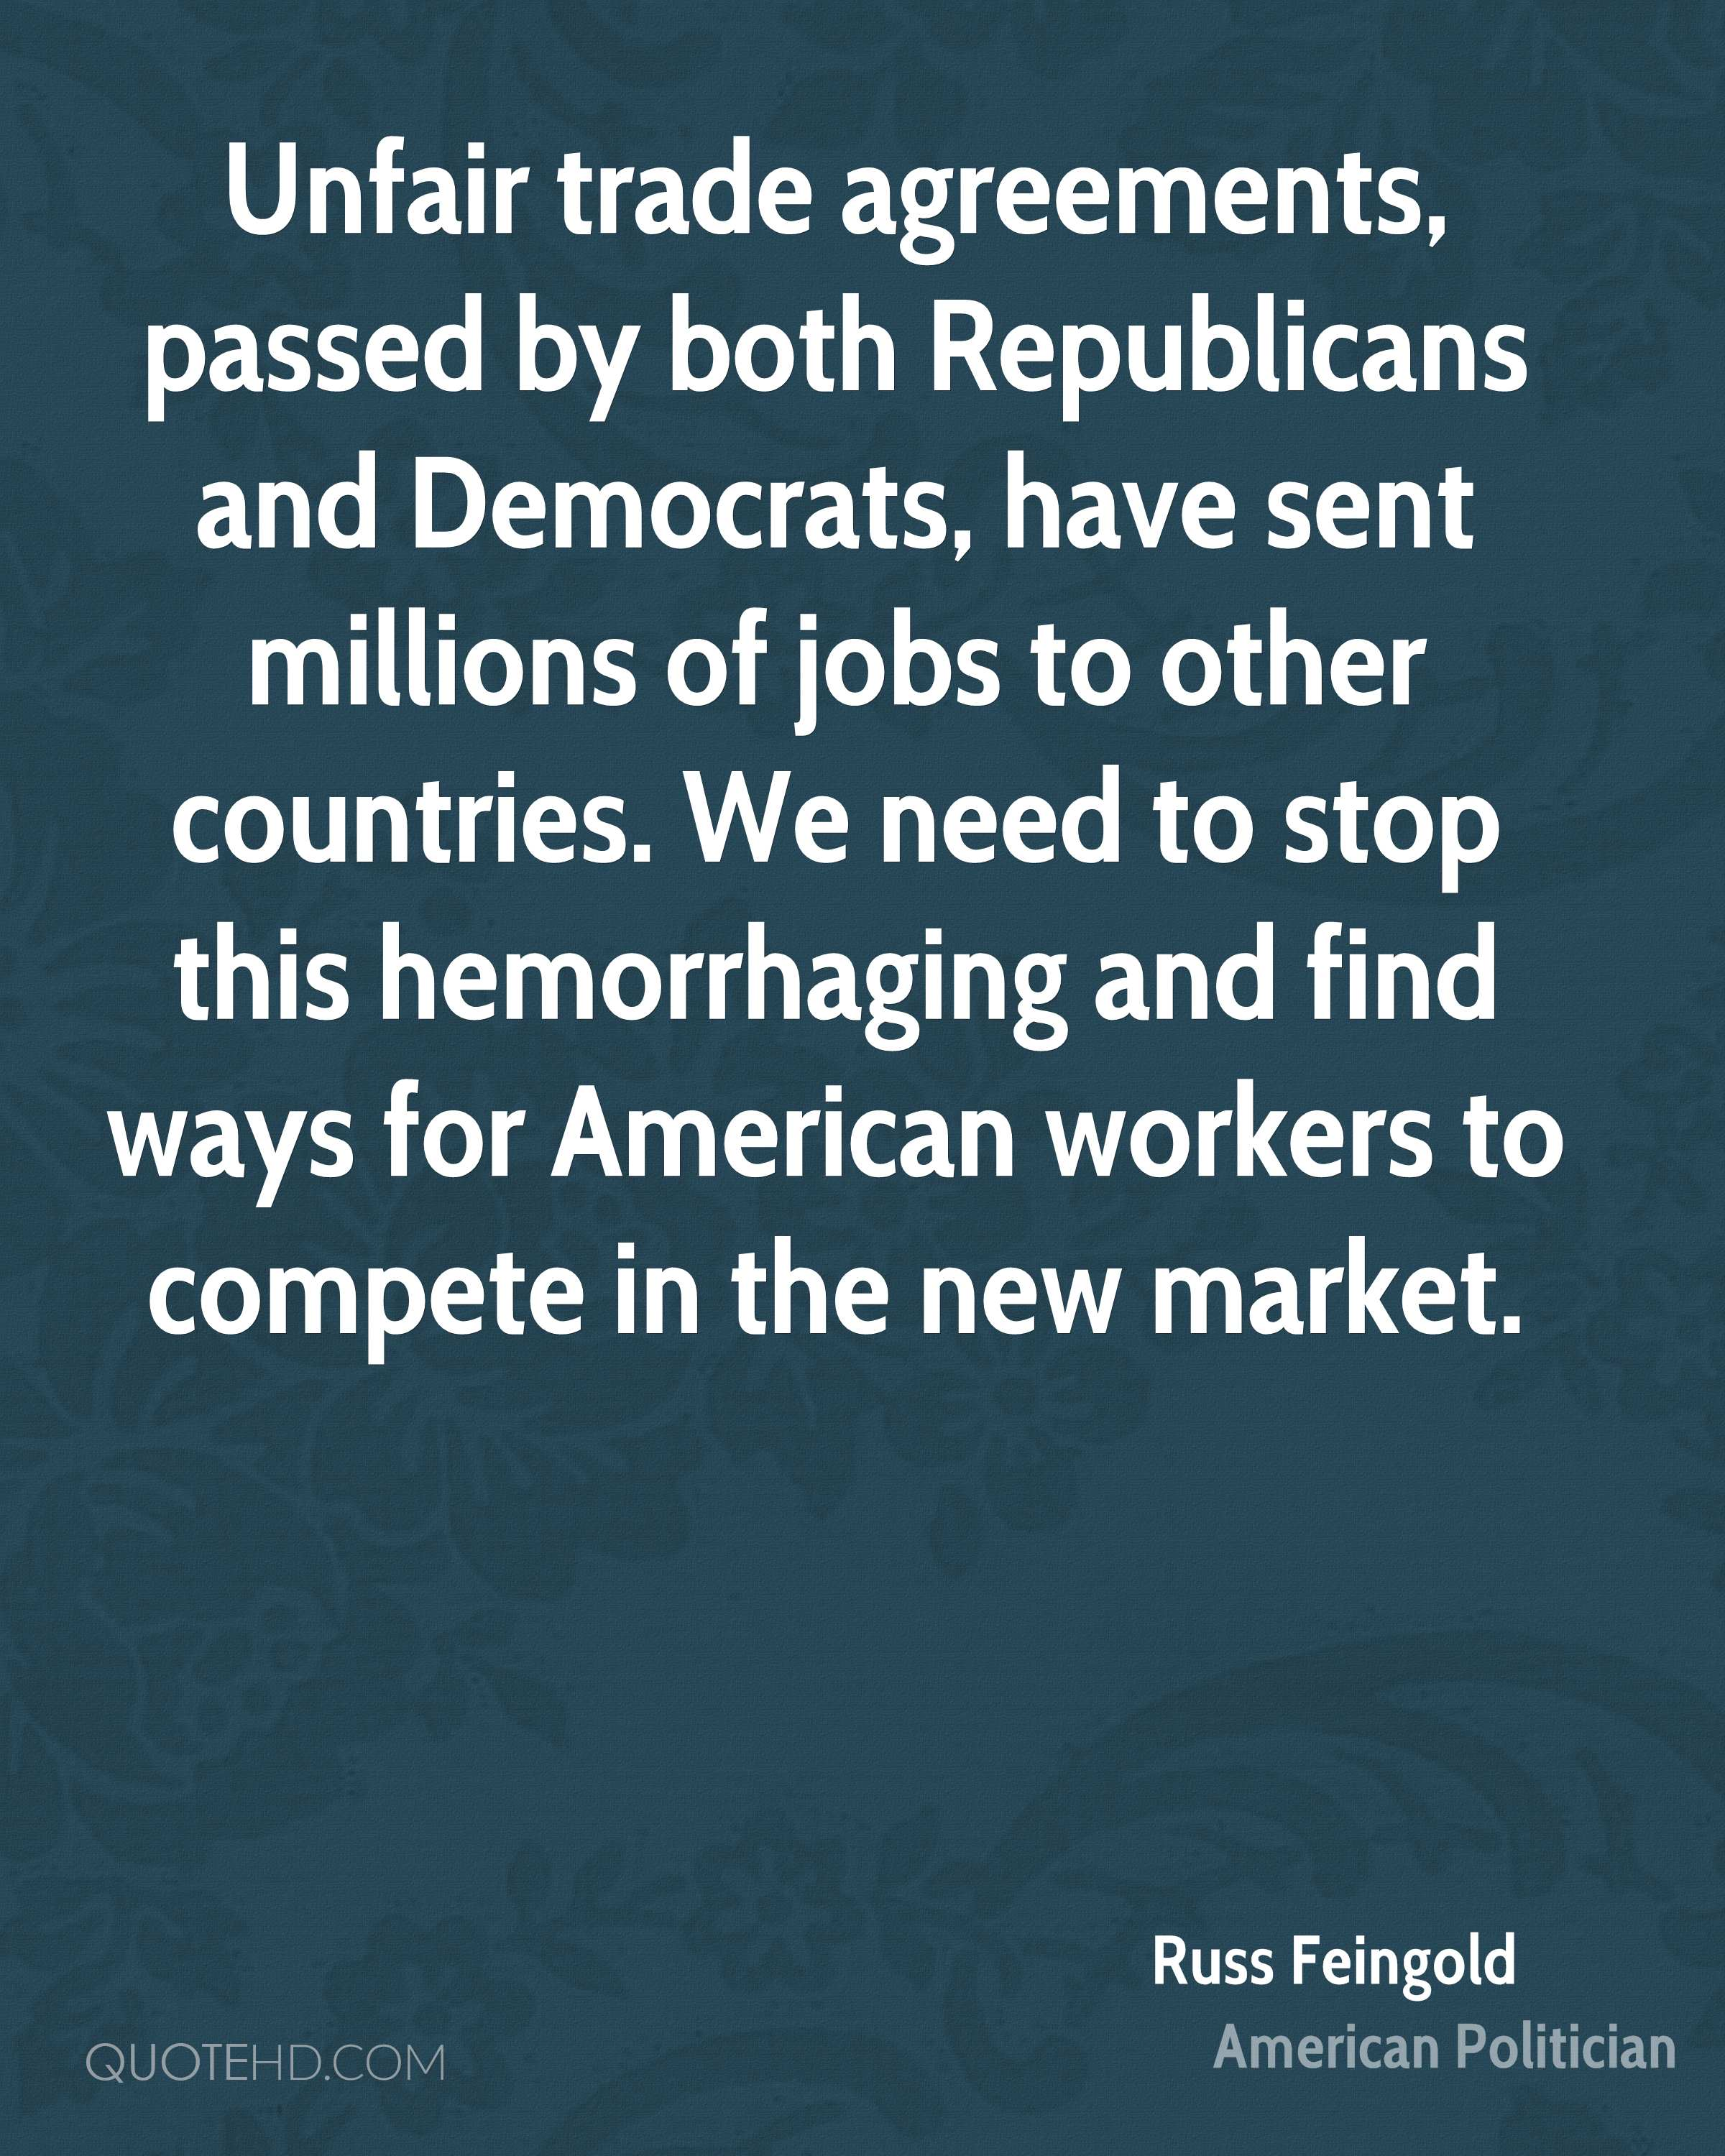 Unfair trade agreements, passed by both Republicans and Democrats, have sent millions of jobs to other countries. We need to stop this hemorrhaging and find ways for American workers to compete in the new market.